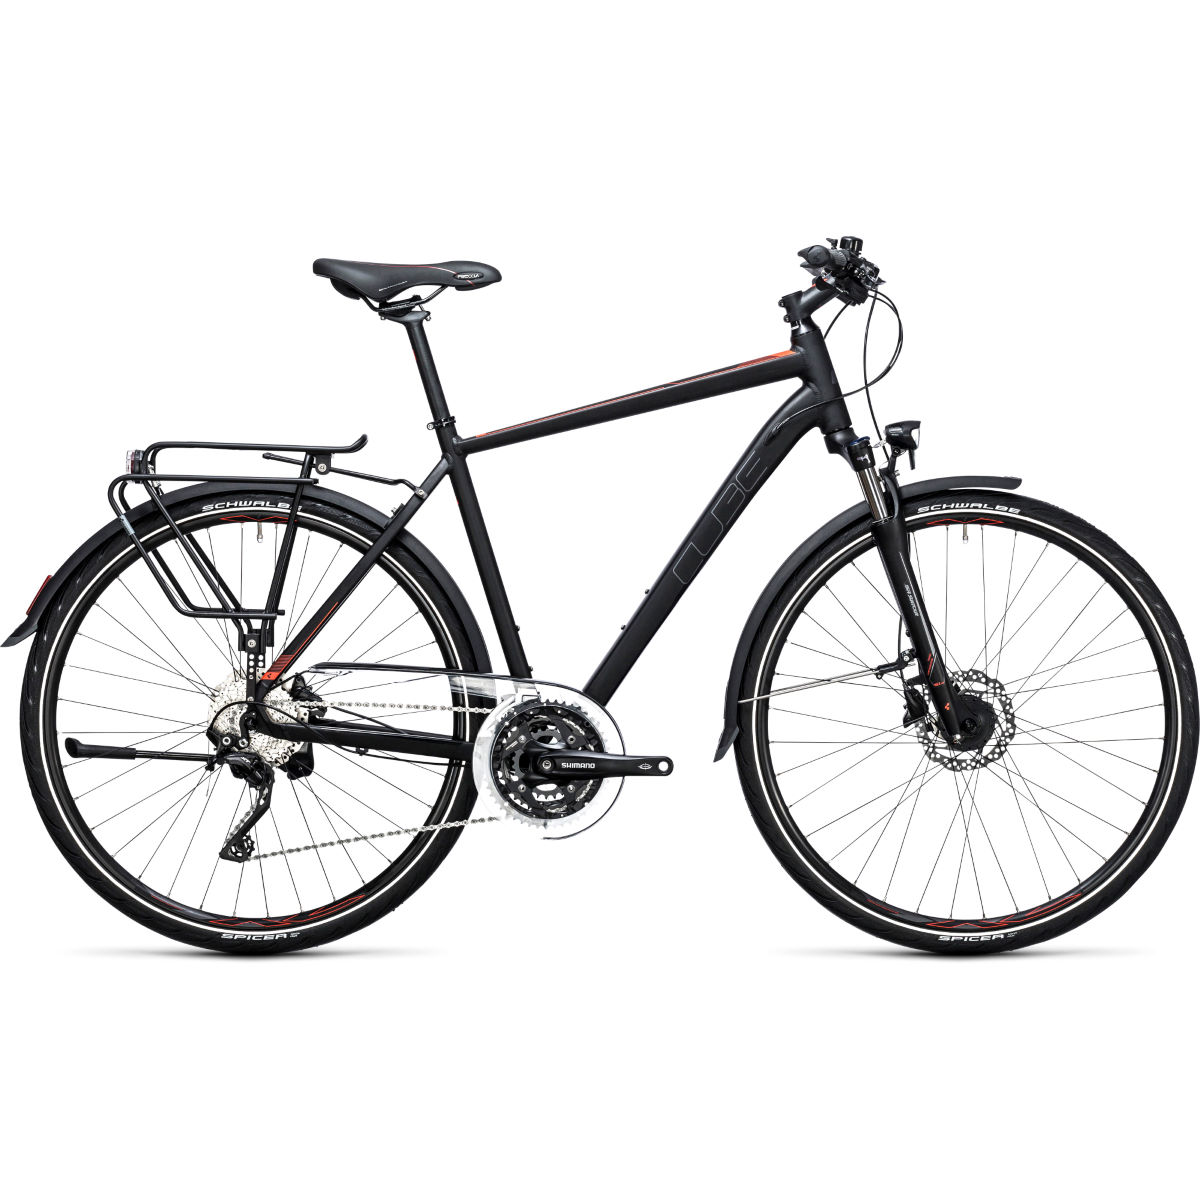 Cube Touring SL City Bike - Audax bicycles / bicycle touring